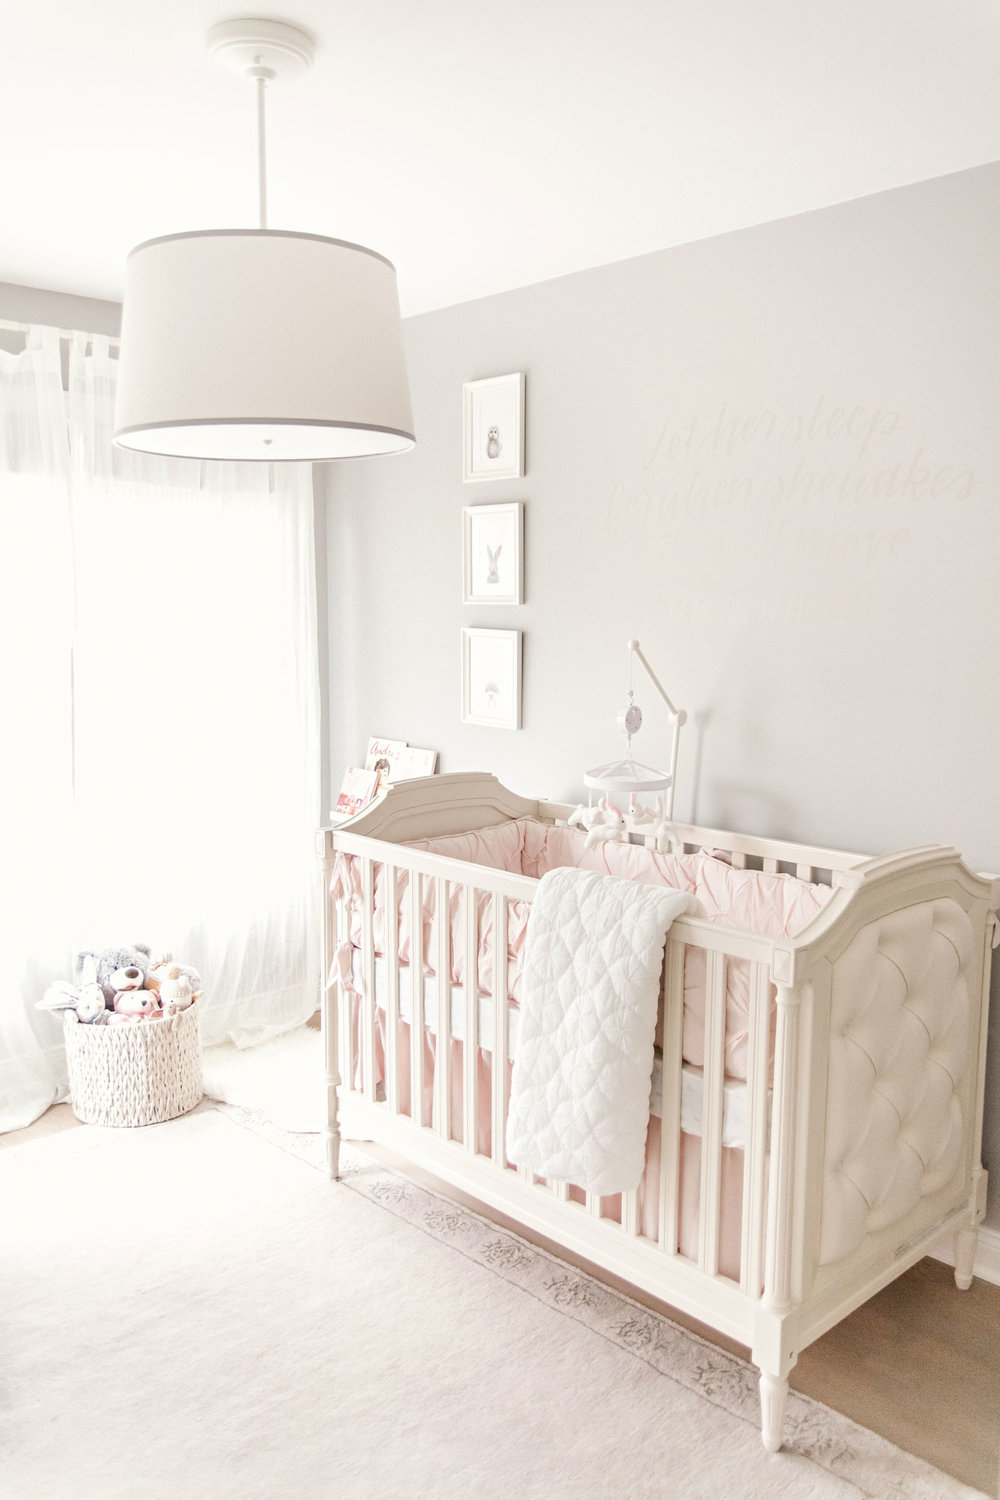 Cassie Schott Photography_Chicago Suburbs Newborn and Baby Photographer_Nursery Inspiration.jpg